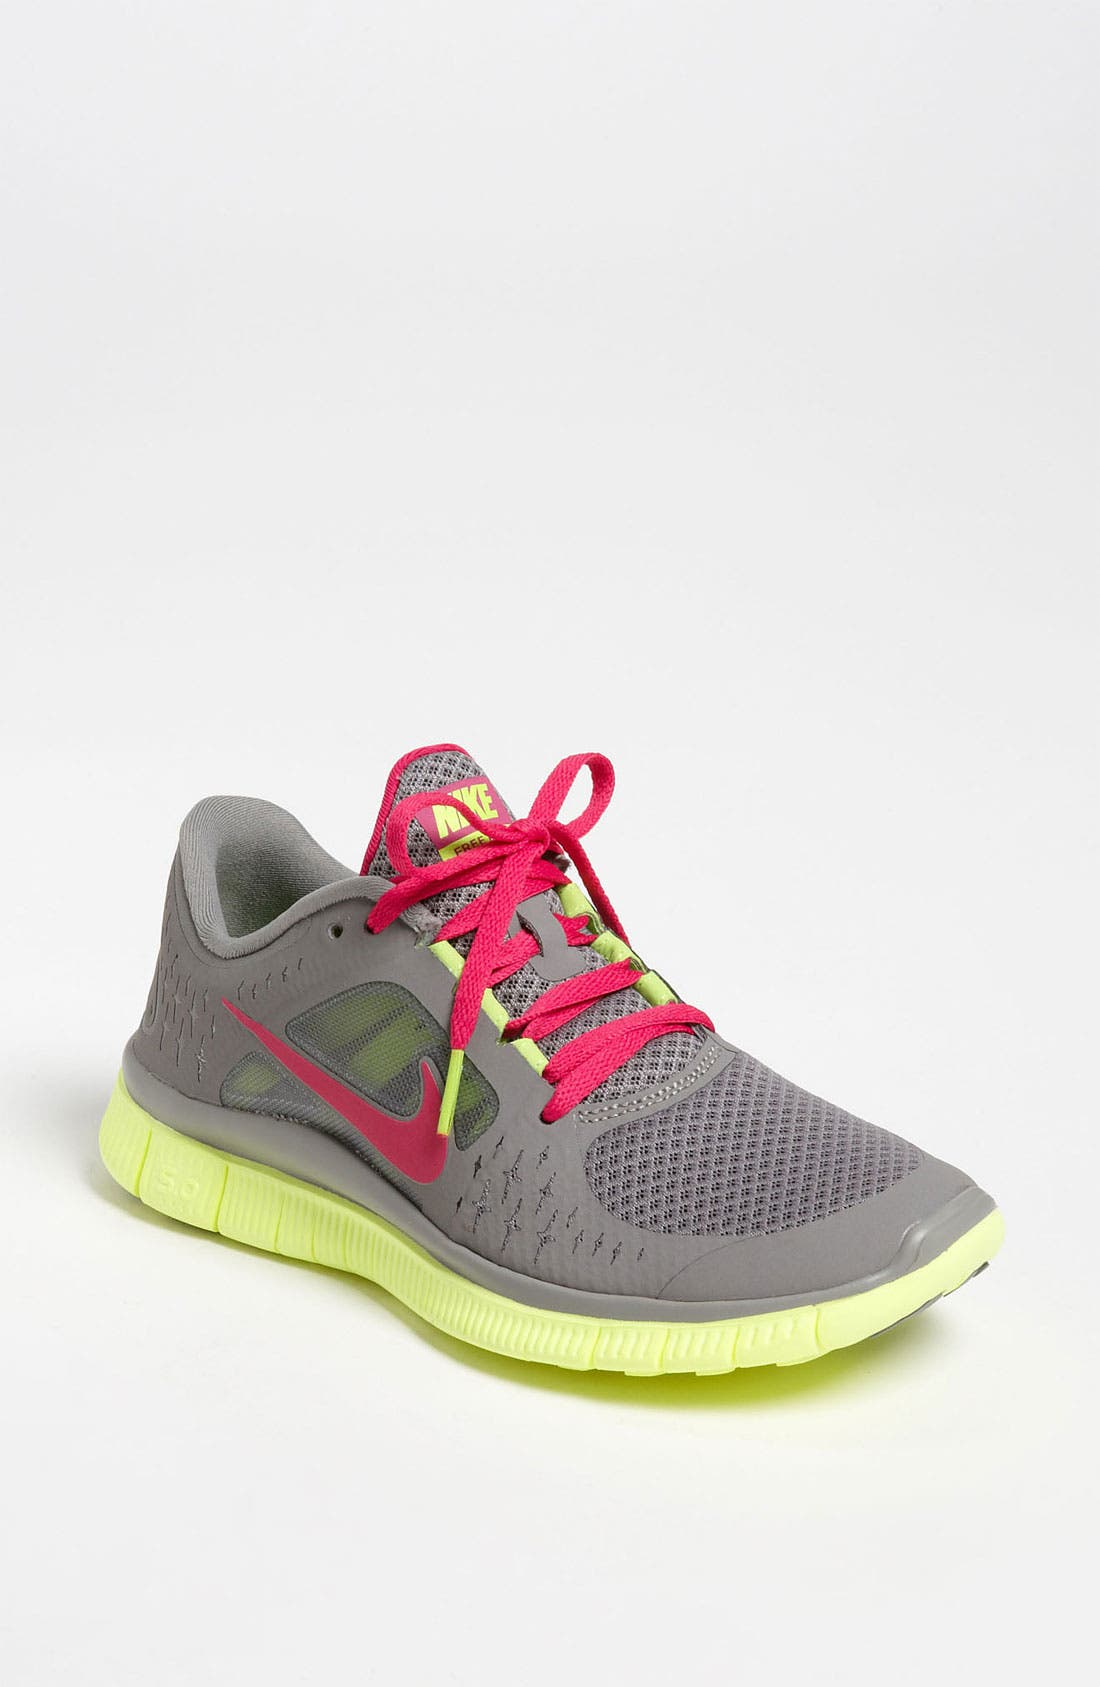 Alternate Image 1 Selected - Nike 'Free Run+ 3' Running Shoe (Women)